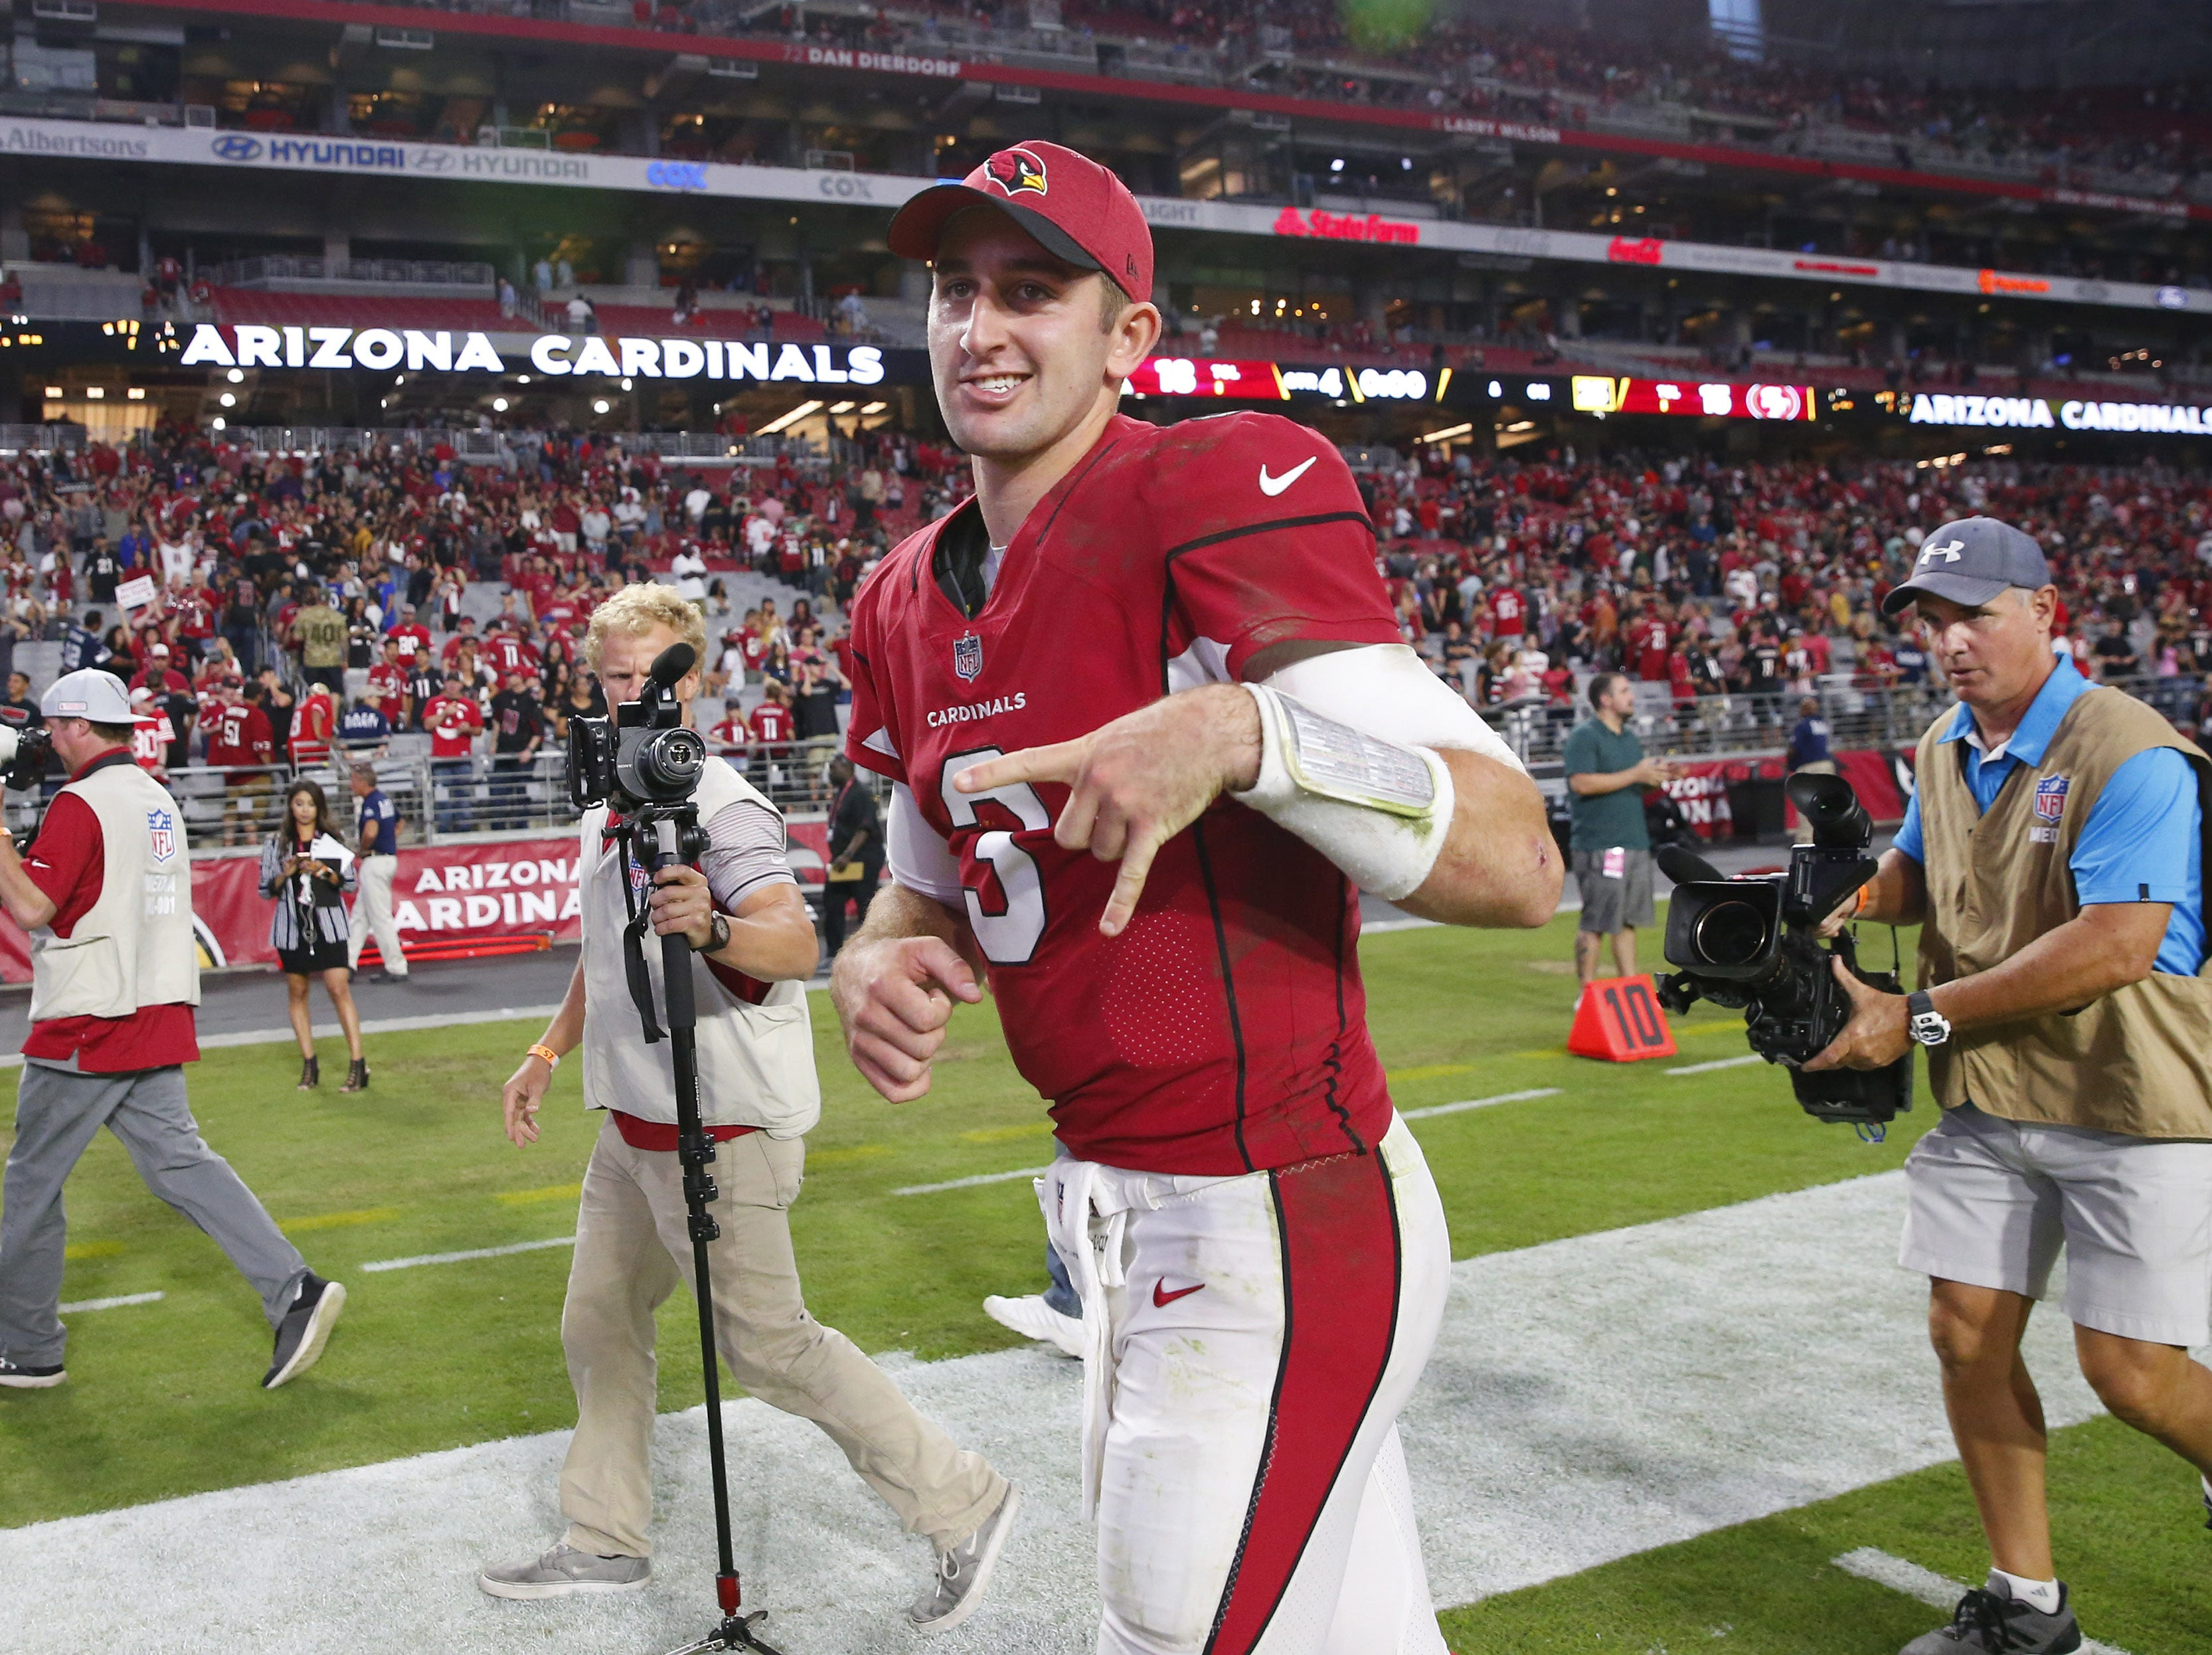 Arizona Cardinals quarterback Josh Rosen (3) reacts after beating the San Francisco 49ers 18-15 on Oct. 28 at State Farm Stadium.